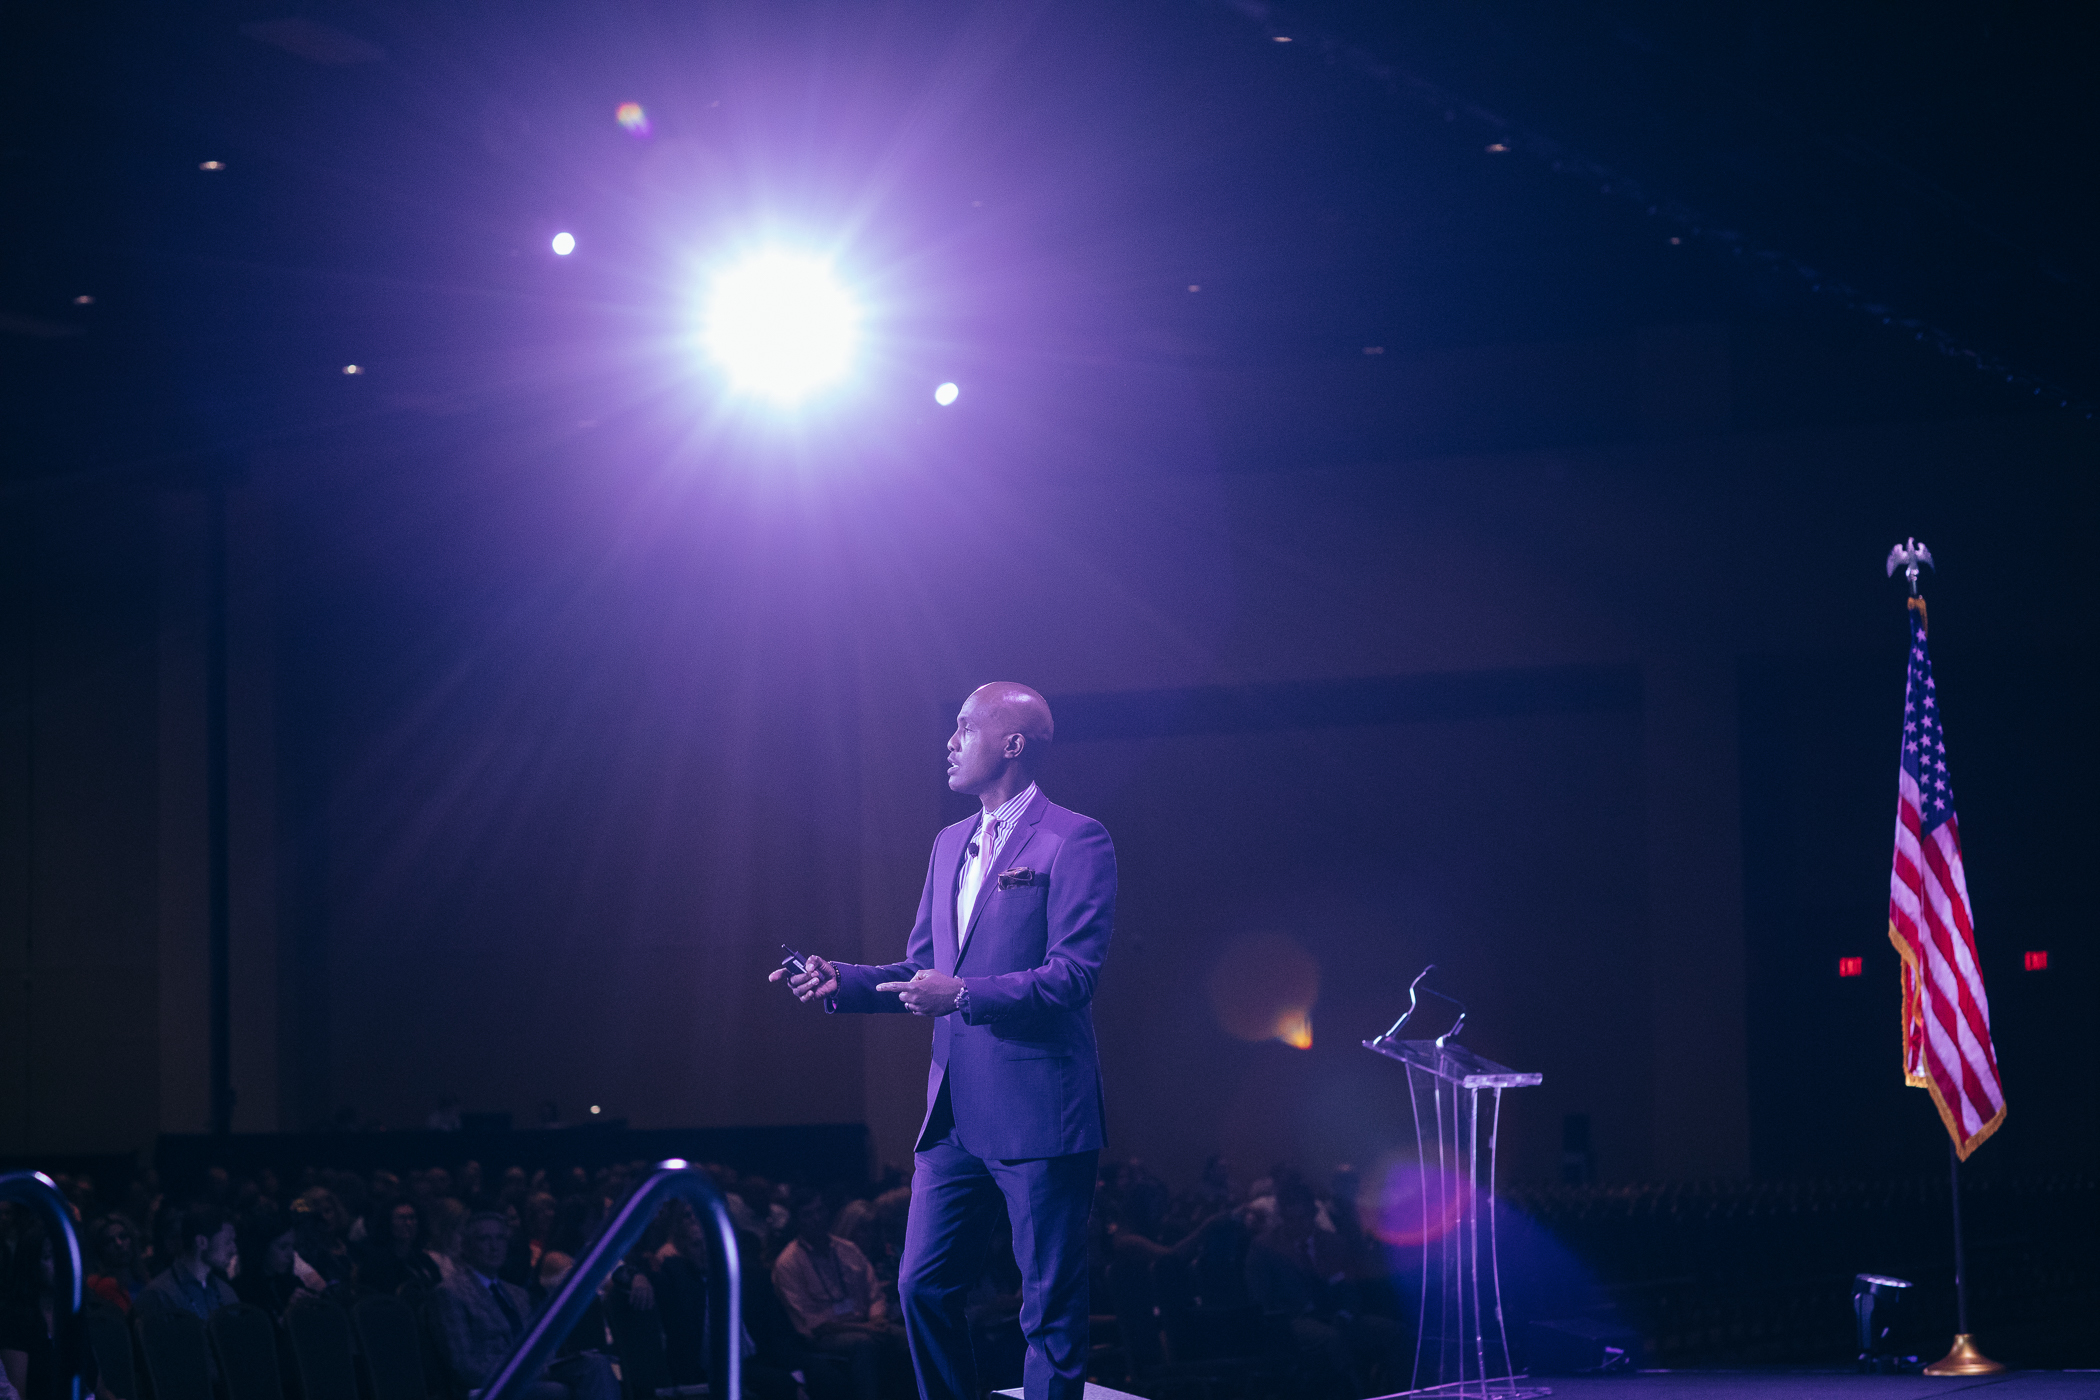 live event commercial photography brand storytelling for education florida conference photographer ©2018abigailbobophotography-96.jpg